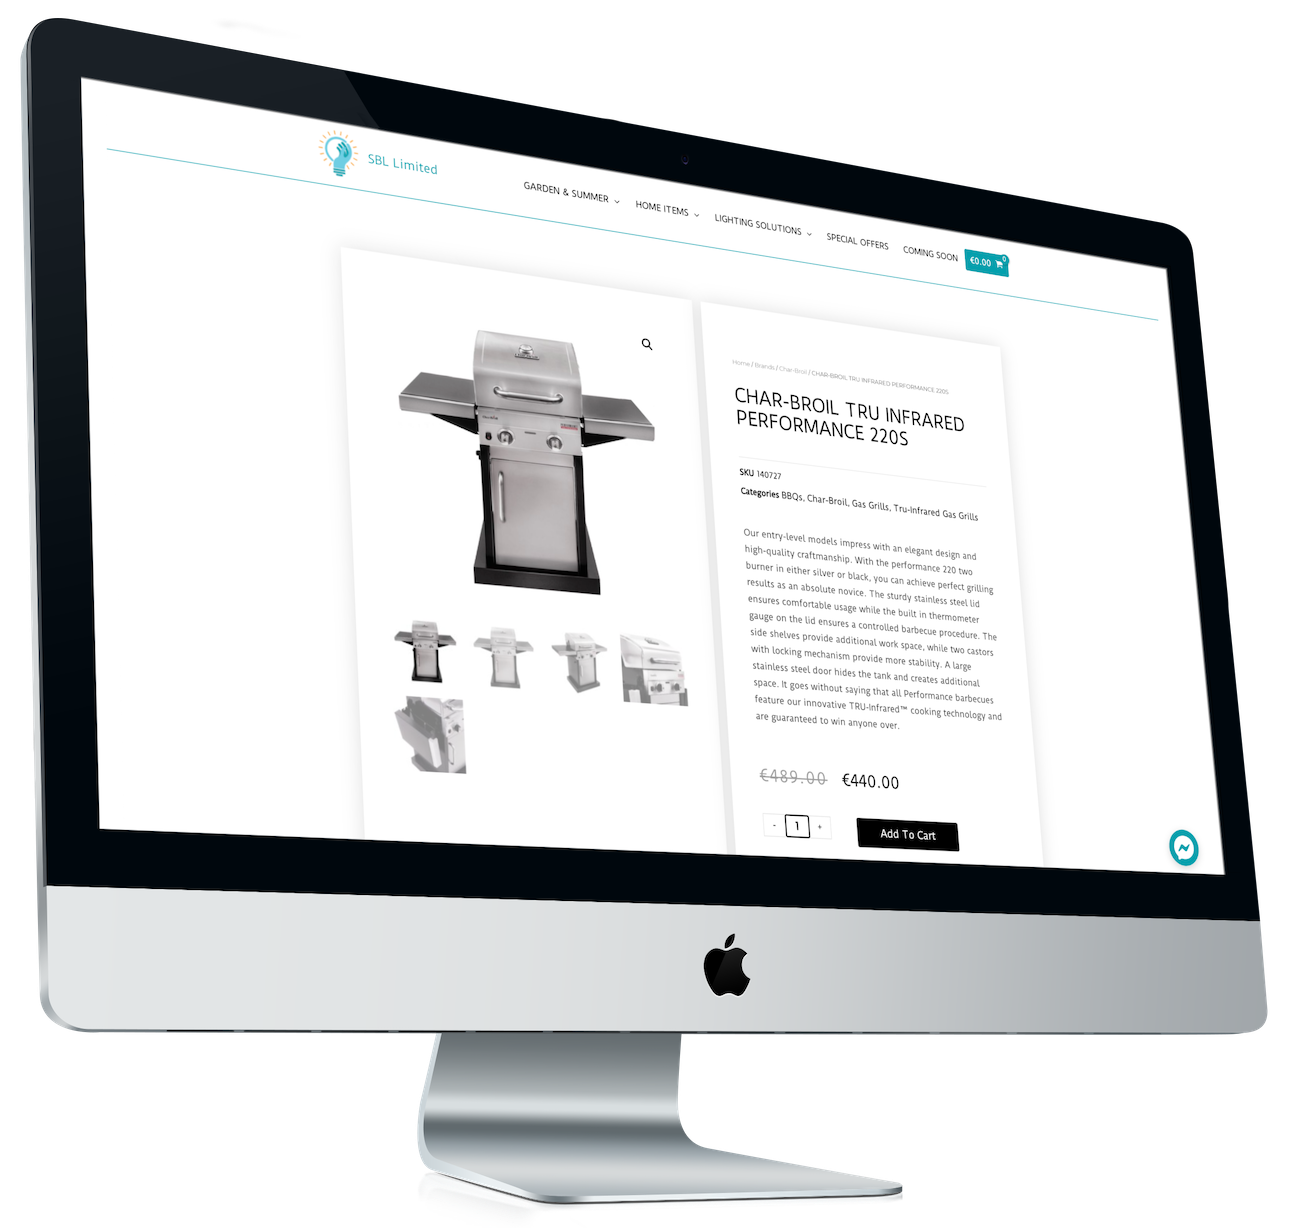 Sell online with a powerful e-commerce website